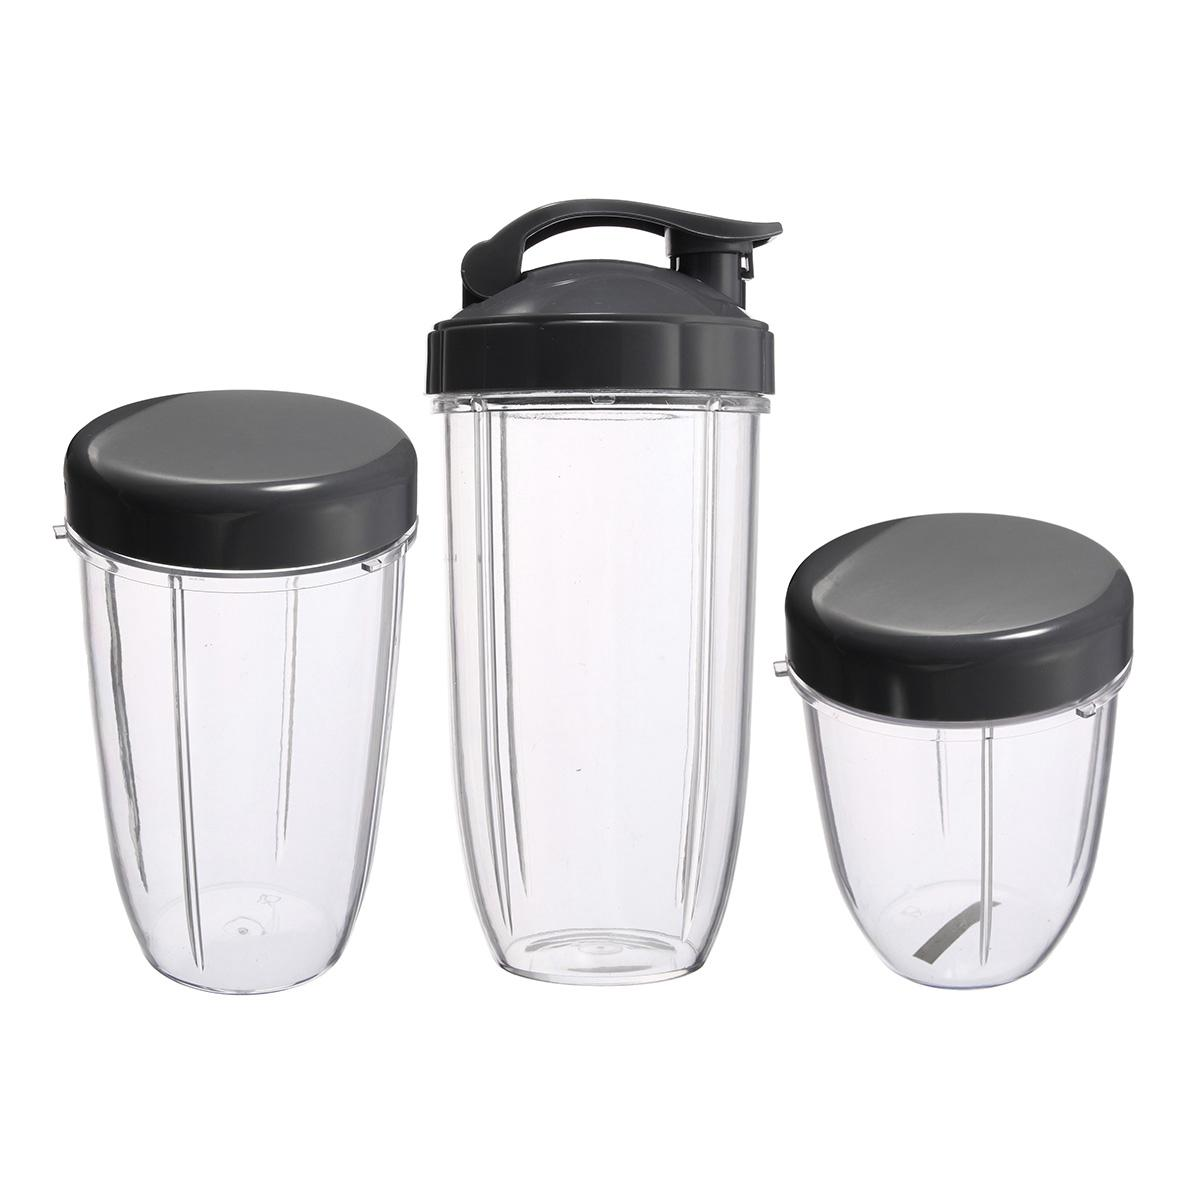 3Pcs Replacement Cups 32 Oz Colossal +24 Oz Tall +18oz Small Cup+3 Lids For Nutribullet Fruit Juicer Parts Kitchen Appliance Bottle